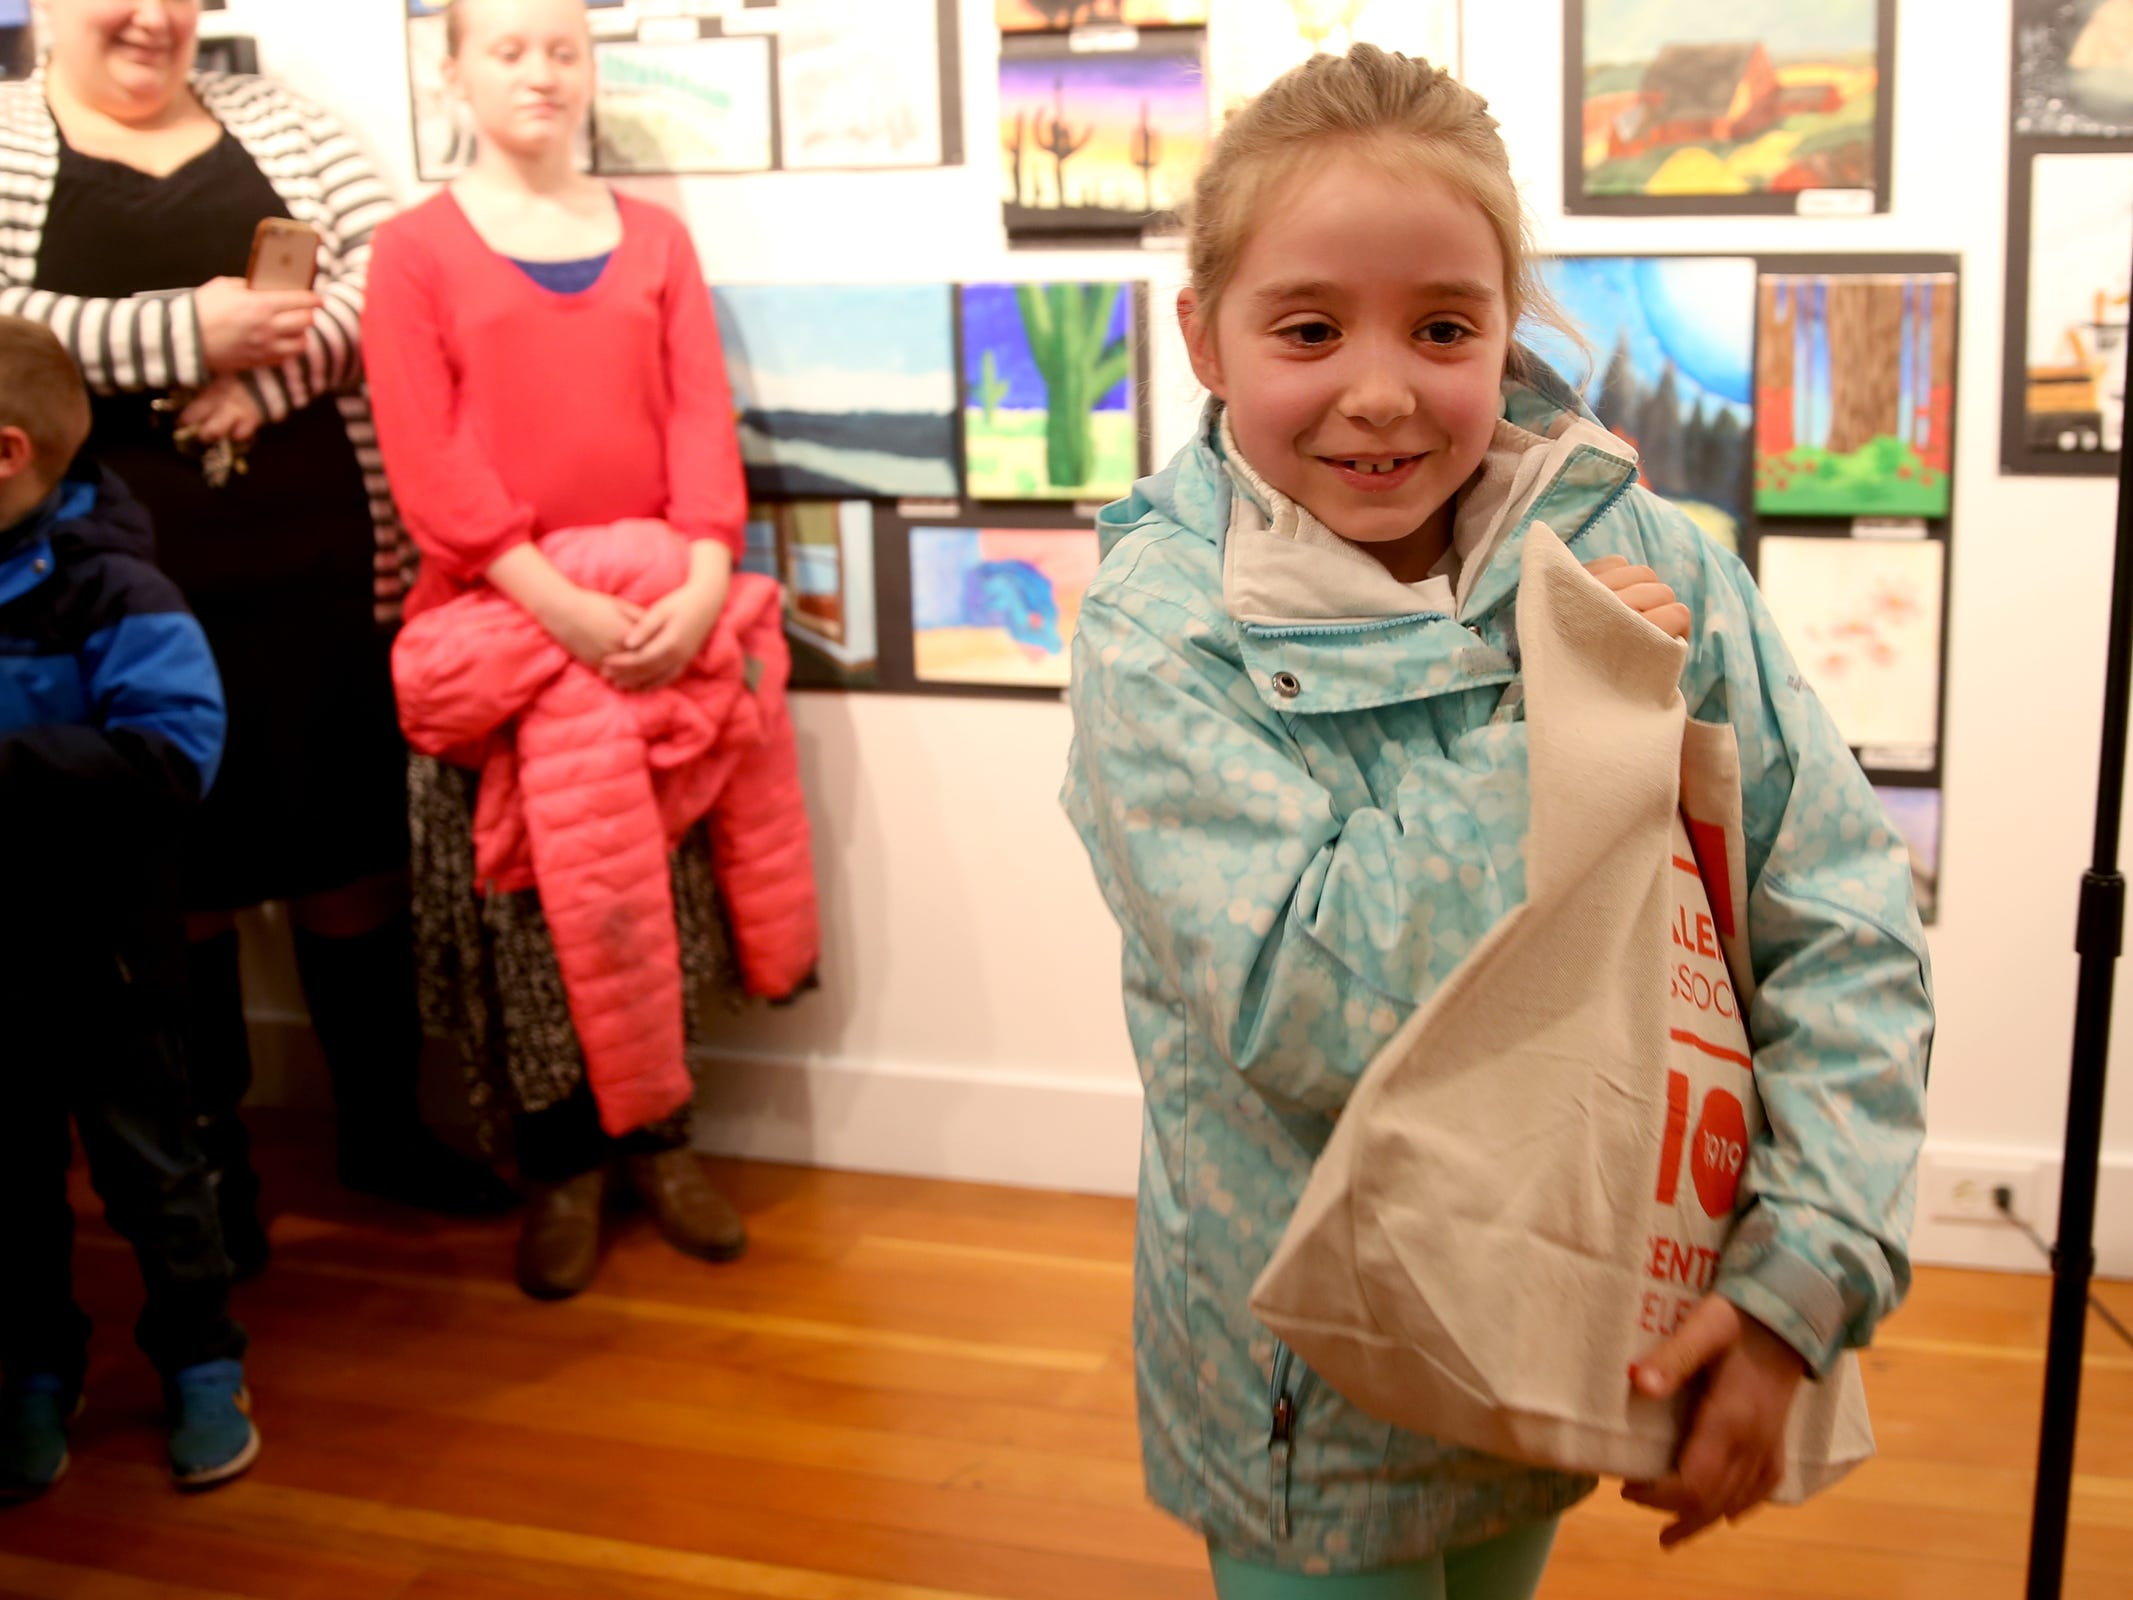 Isla Allen, a second-grader from Keizer, accepts the second-place award for elementary students during the 10th annual Young Artists' Showcase at the Bush Barn Art Center in Salem on March 9, 2019. The exhibit features artwork by more than 400 students in Marion, Polk and Yamhill counties and runs through April 20.